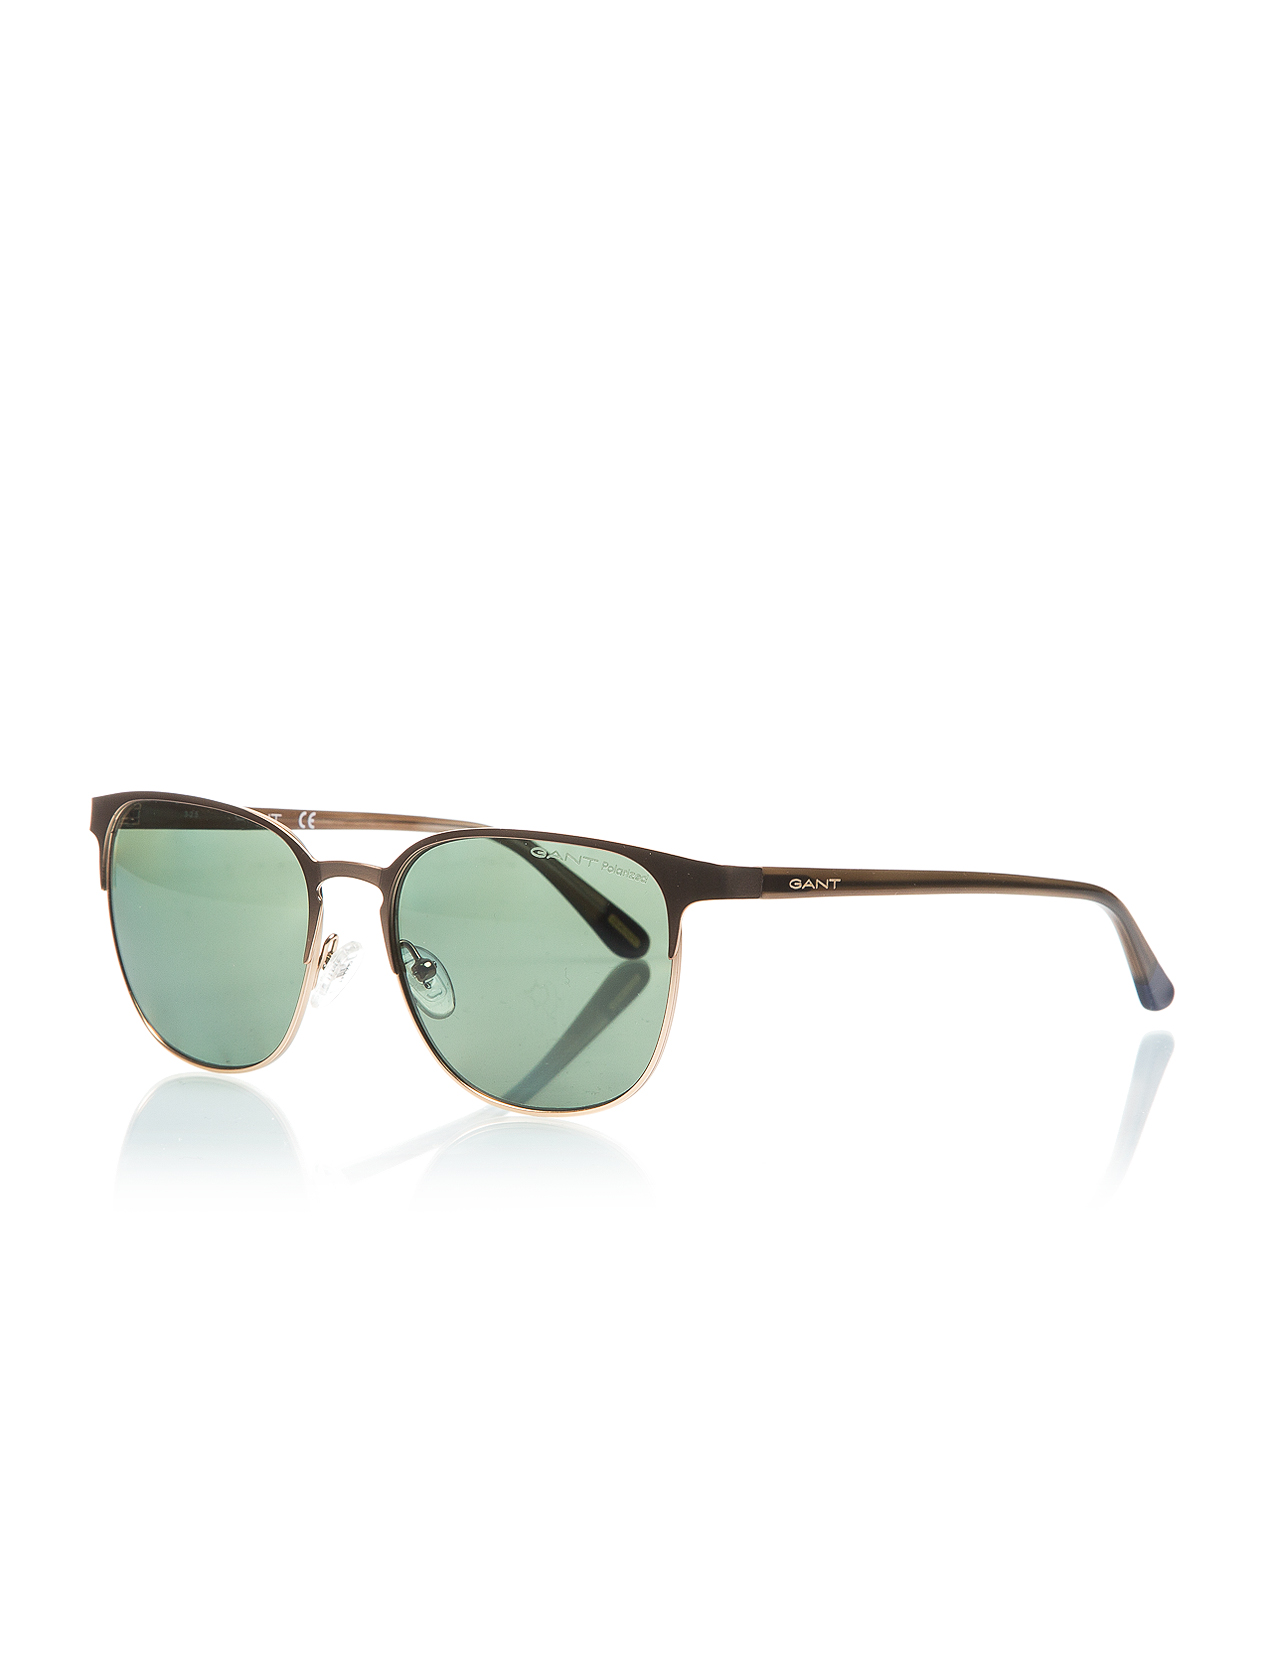 Unisex sunglasses gnt 7077 46r metal yellow unspecified 54 -- gant